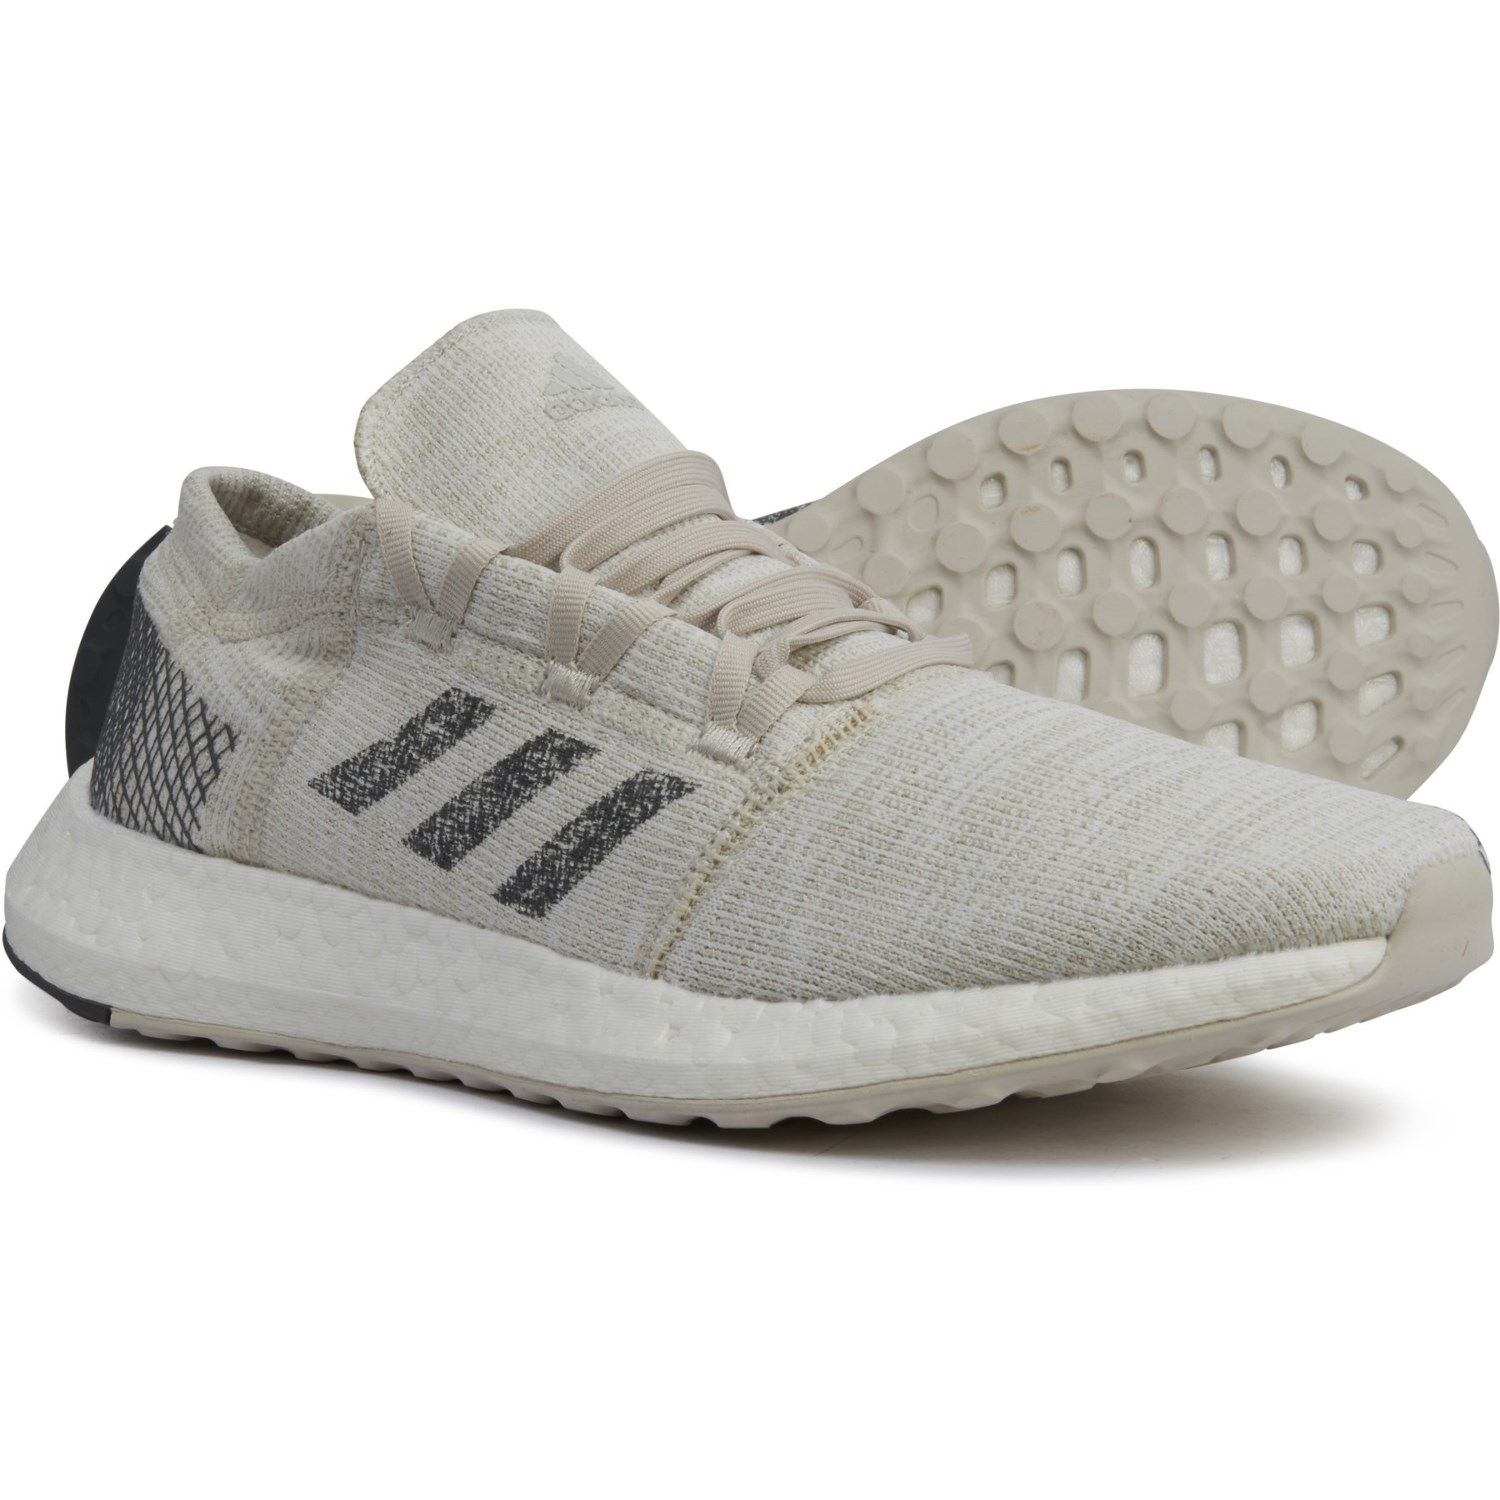 adidas pure boost shoes mens online -